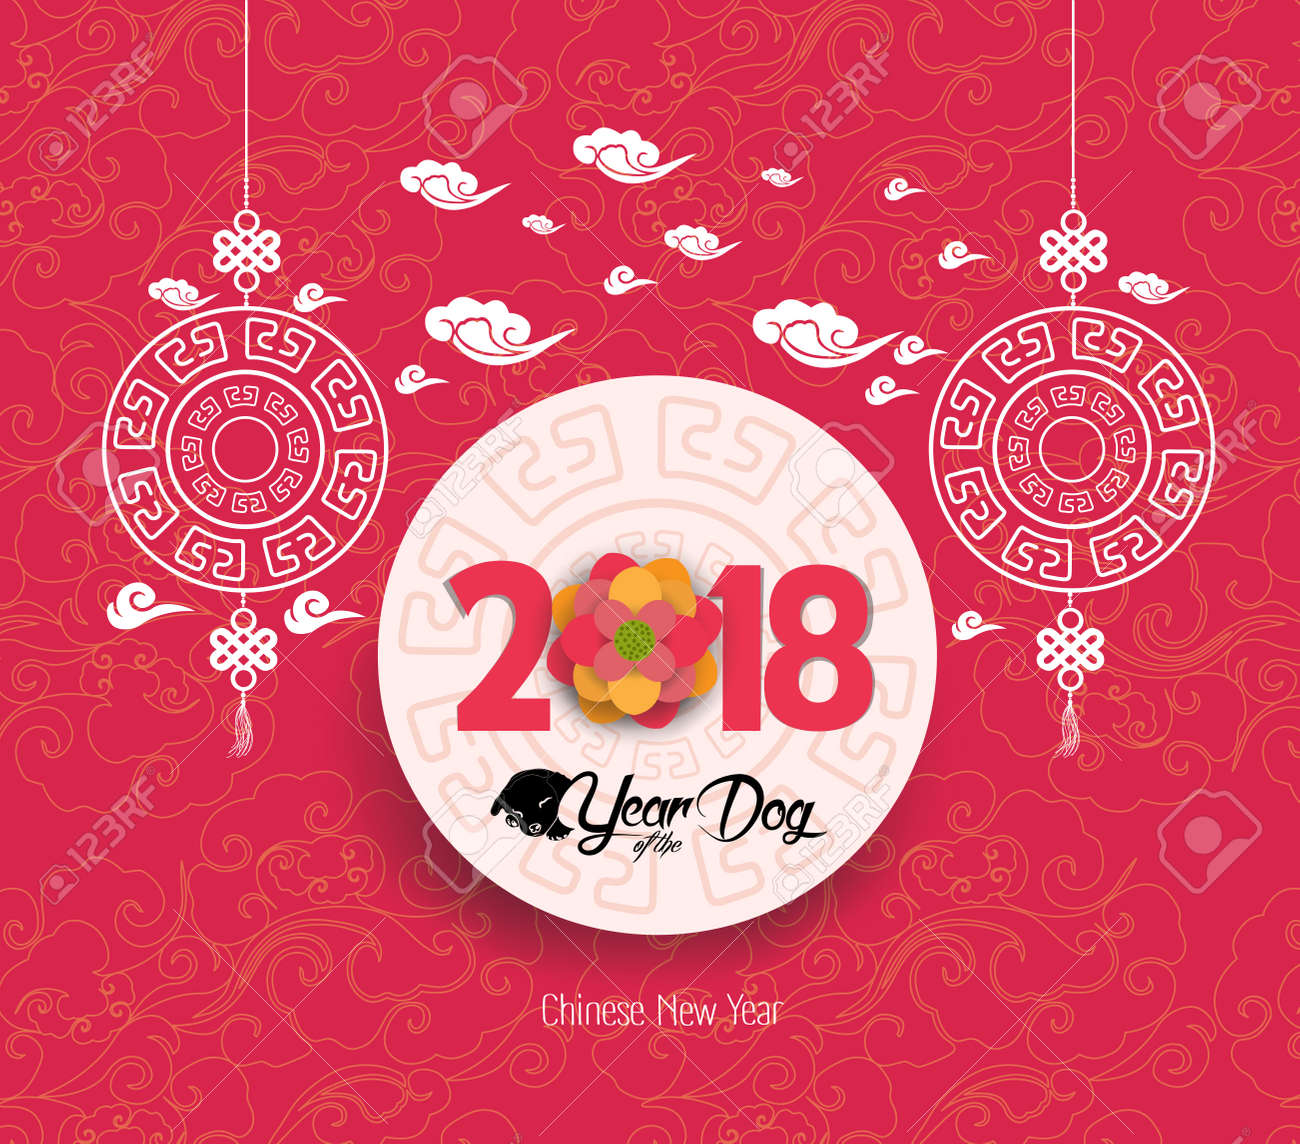 oriental chinese new year 2018 blossom background year of the dog stock vector 85033855